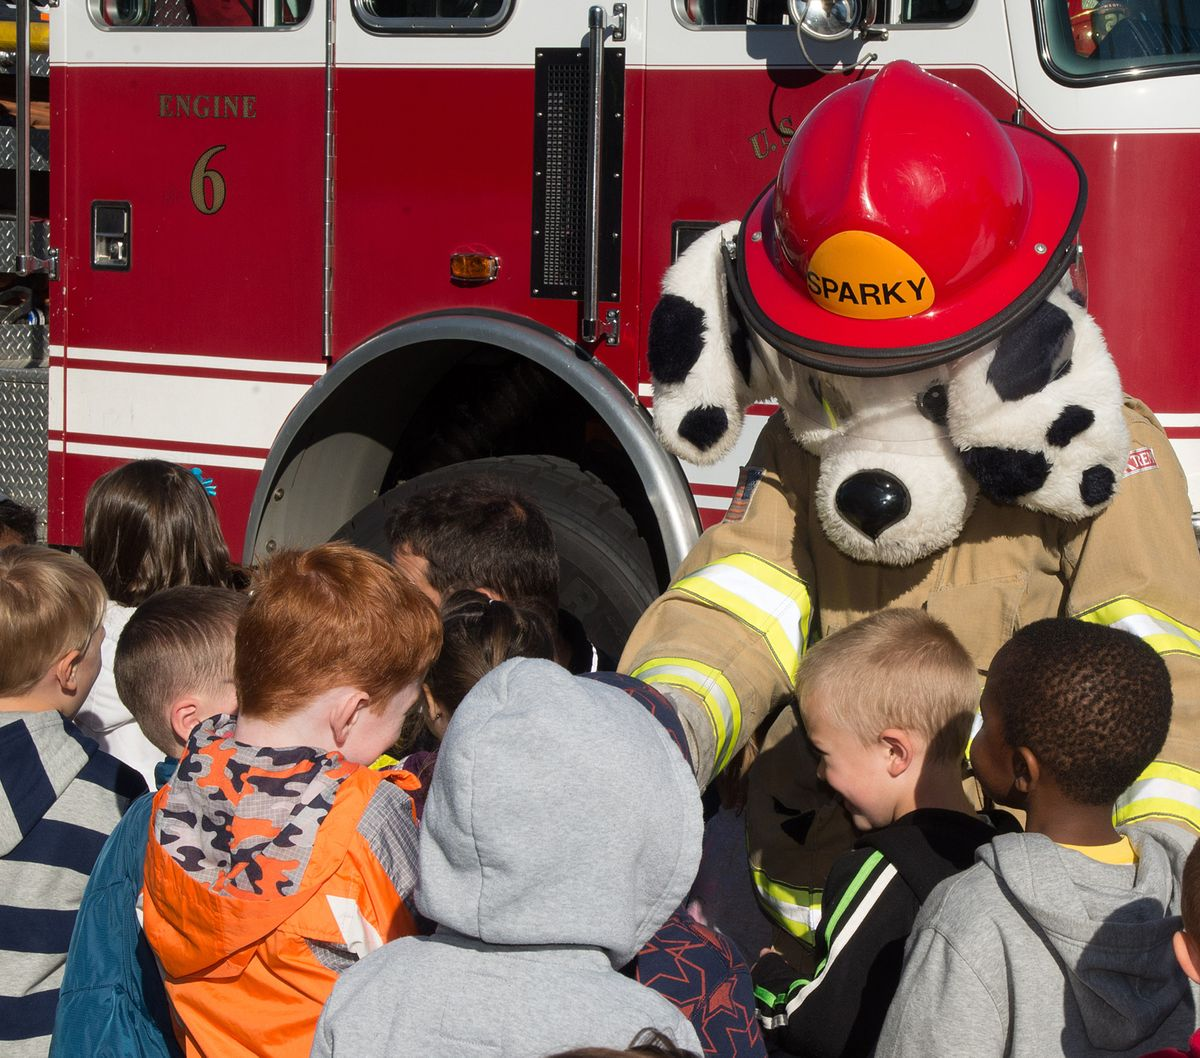 5 ways to incorporate CRR into your volunteer fire department